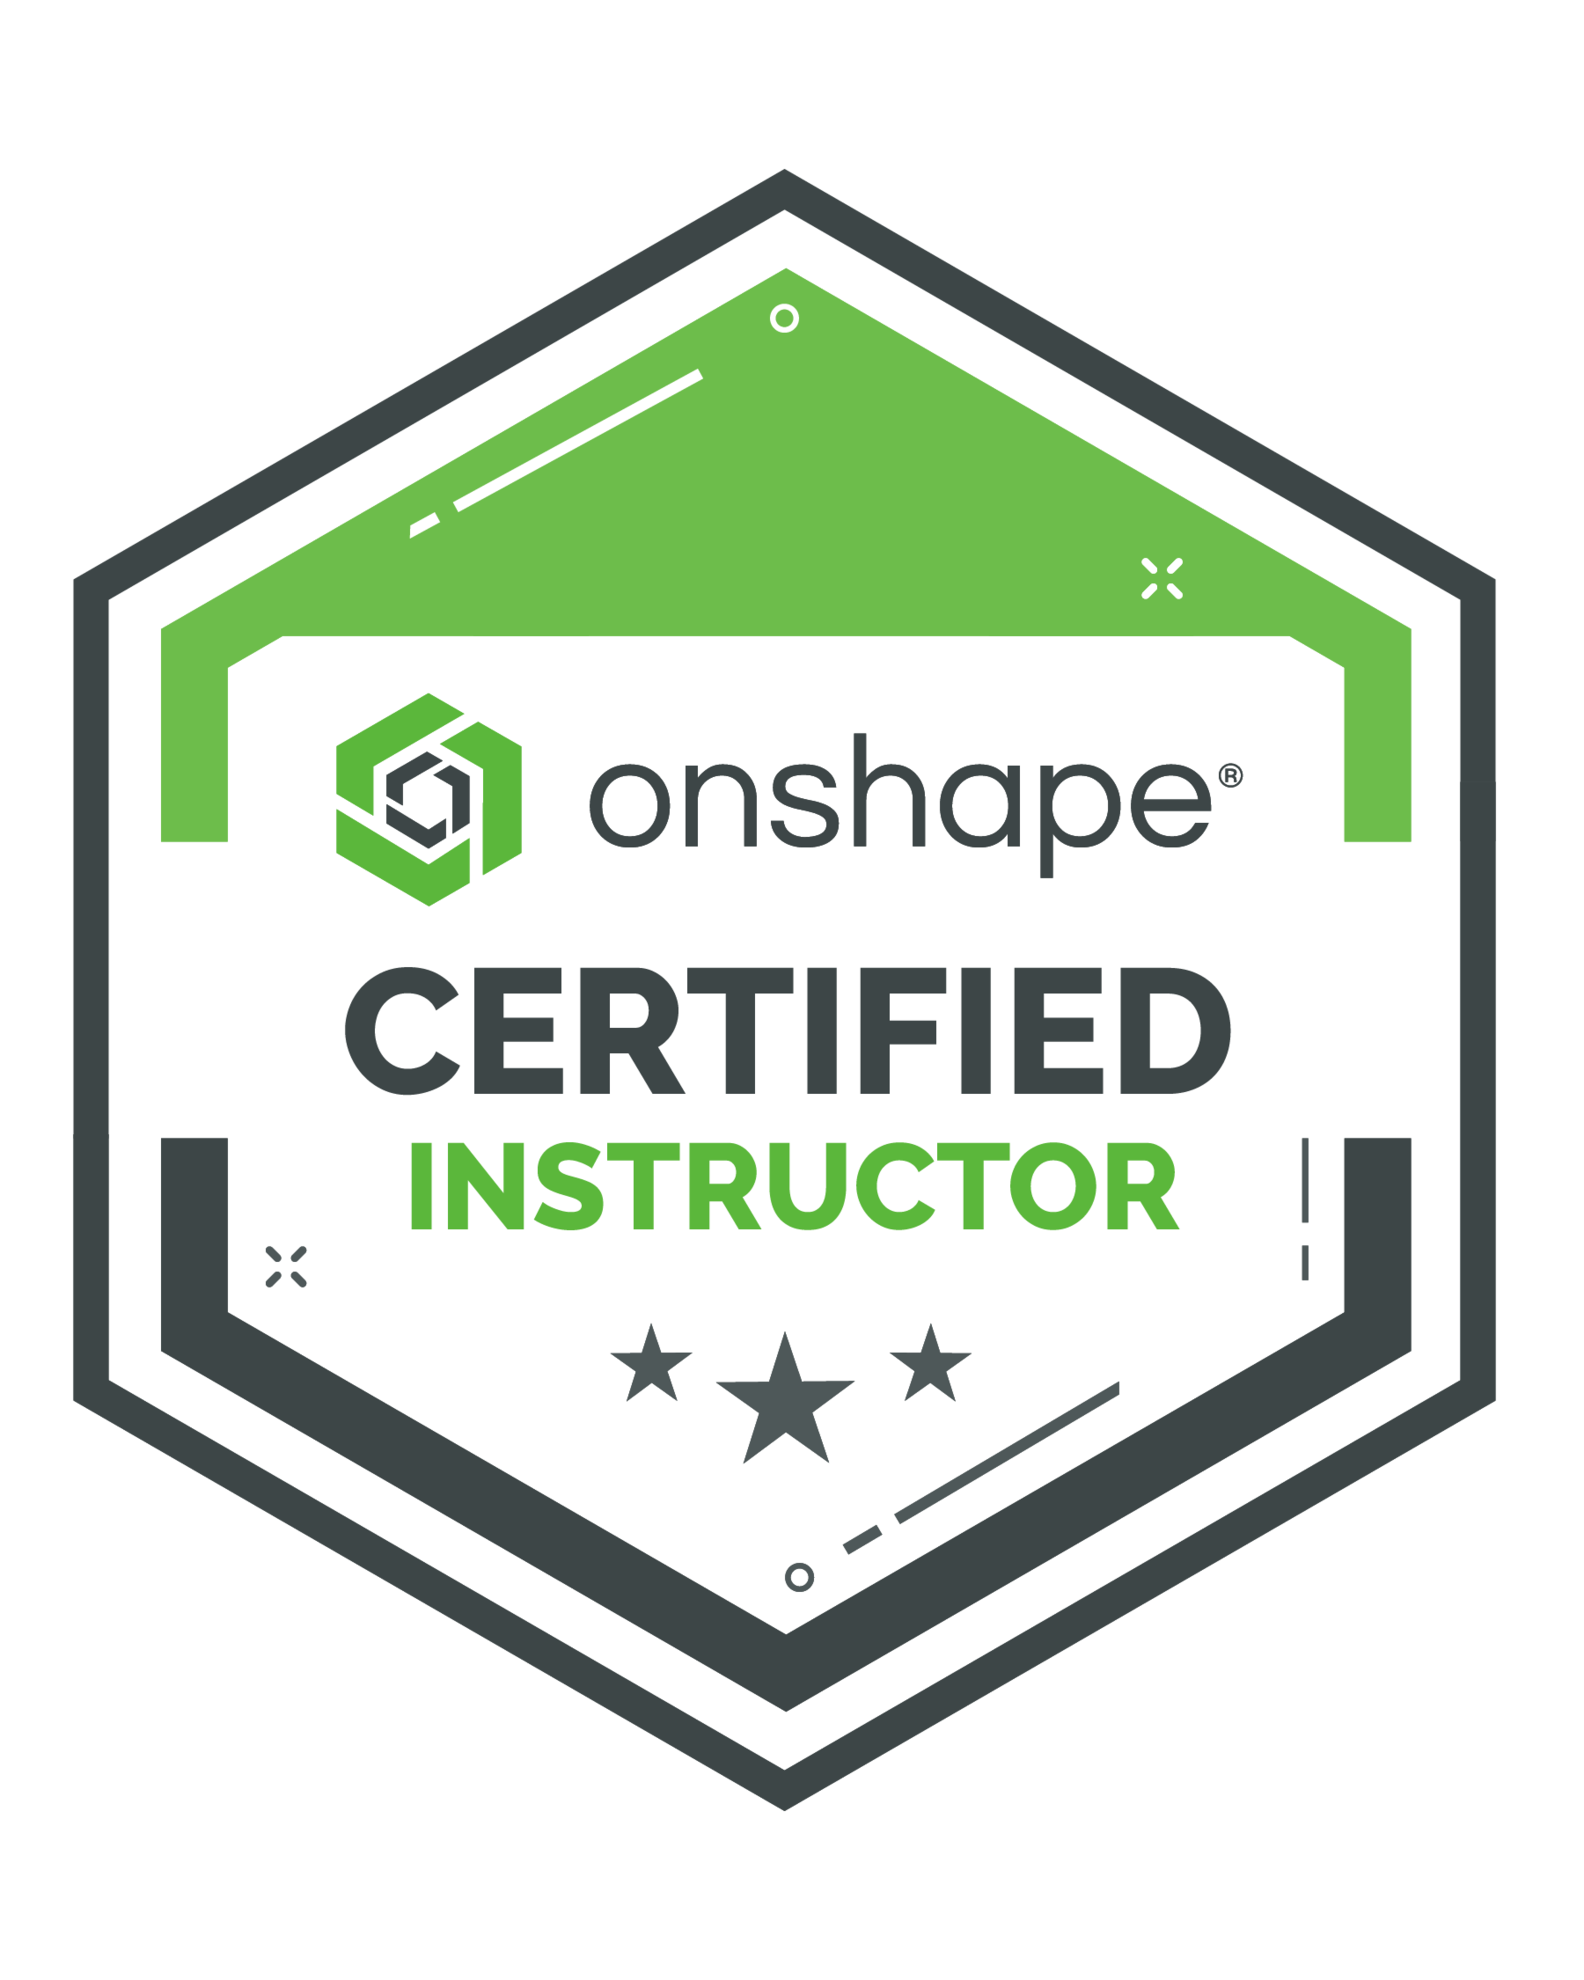 Onshape Certified Instructor Badge